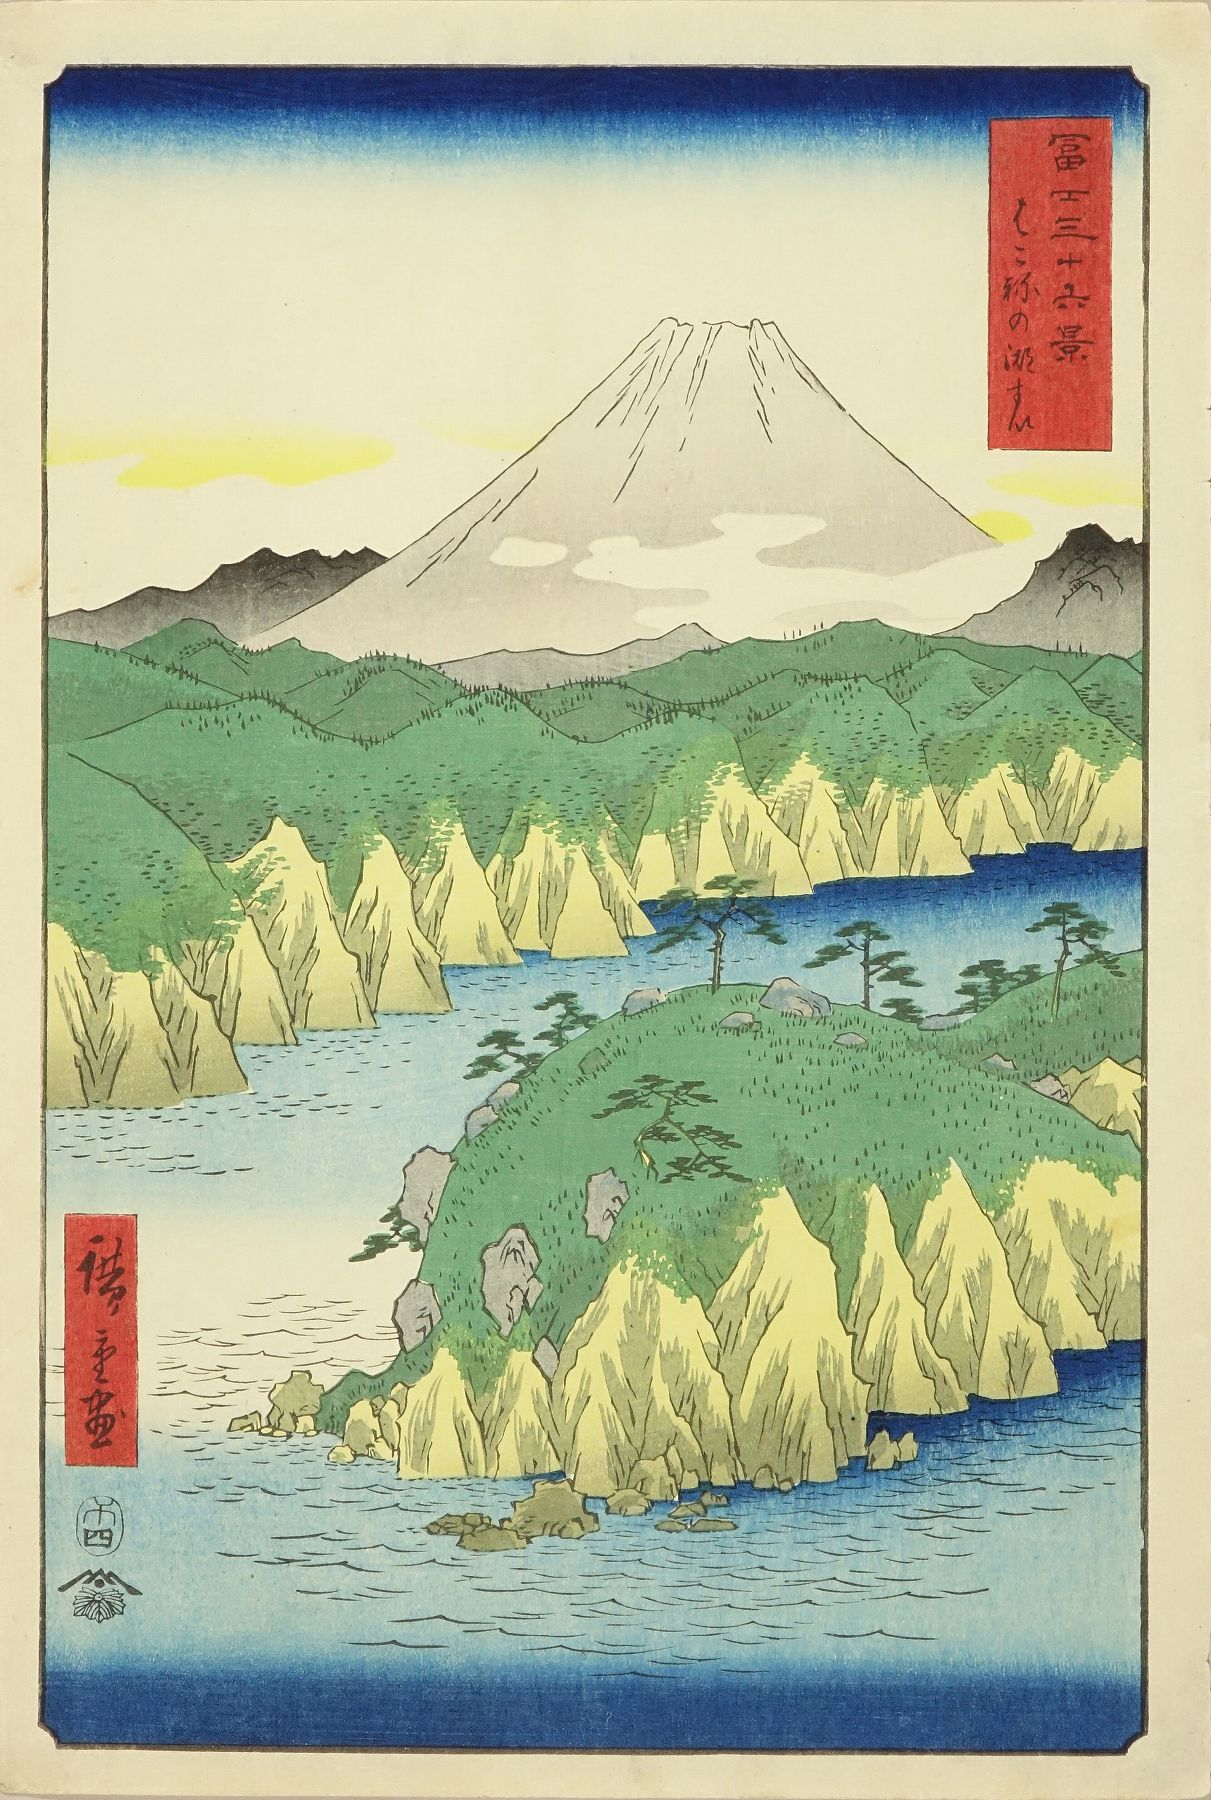 HIROSHIGE The lake of Hakone, from <i>Fuji sanjurokkei</i> (Thirty-six views of Mount Fuji)